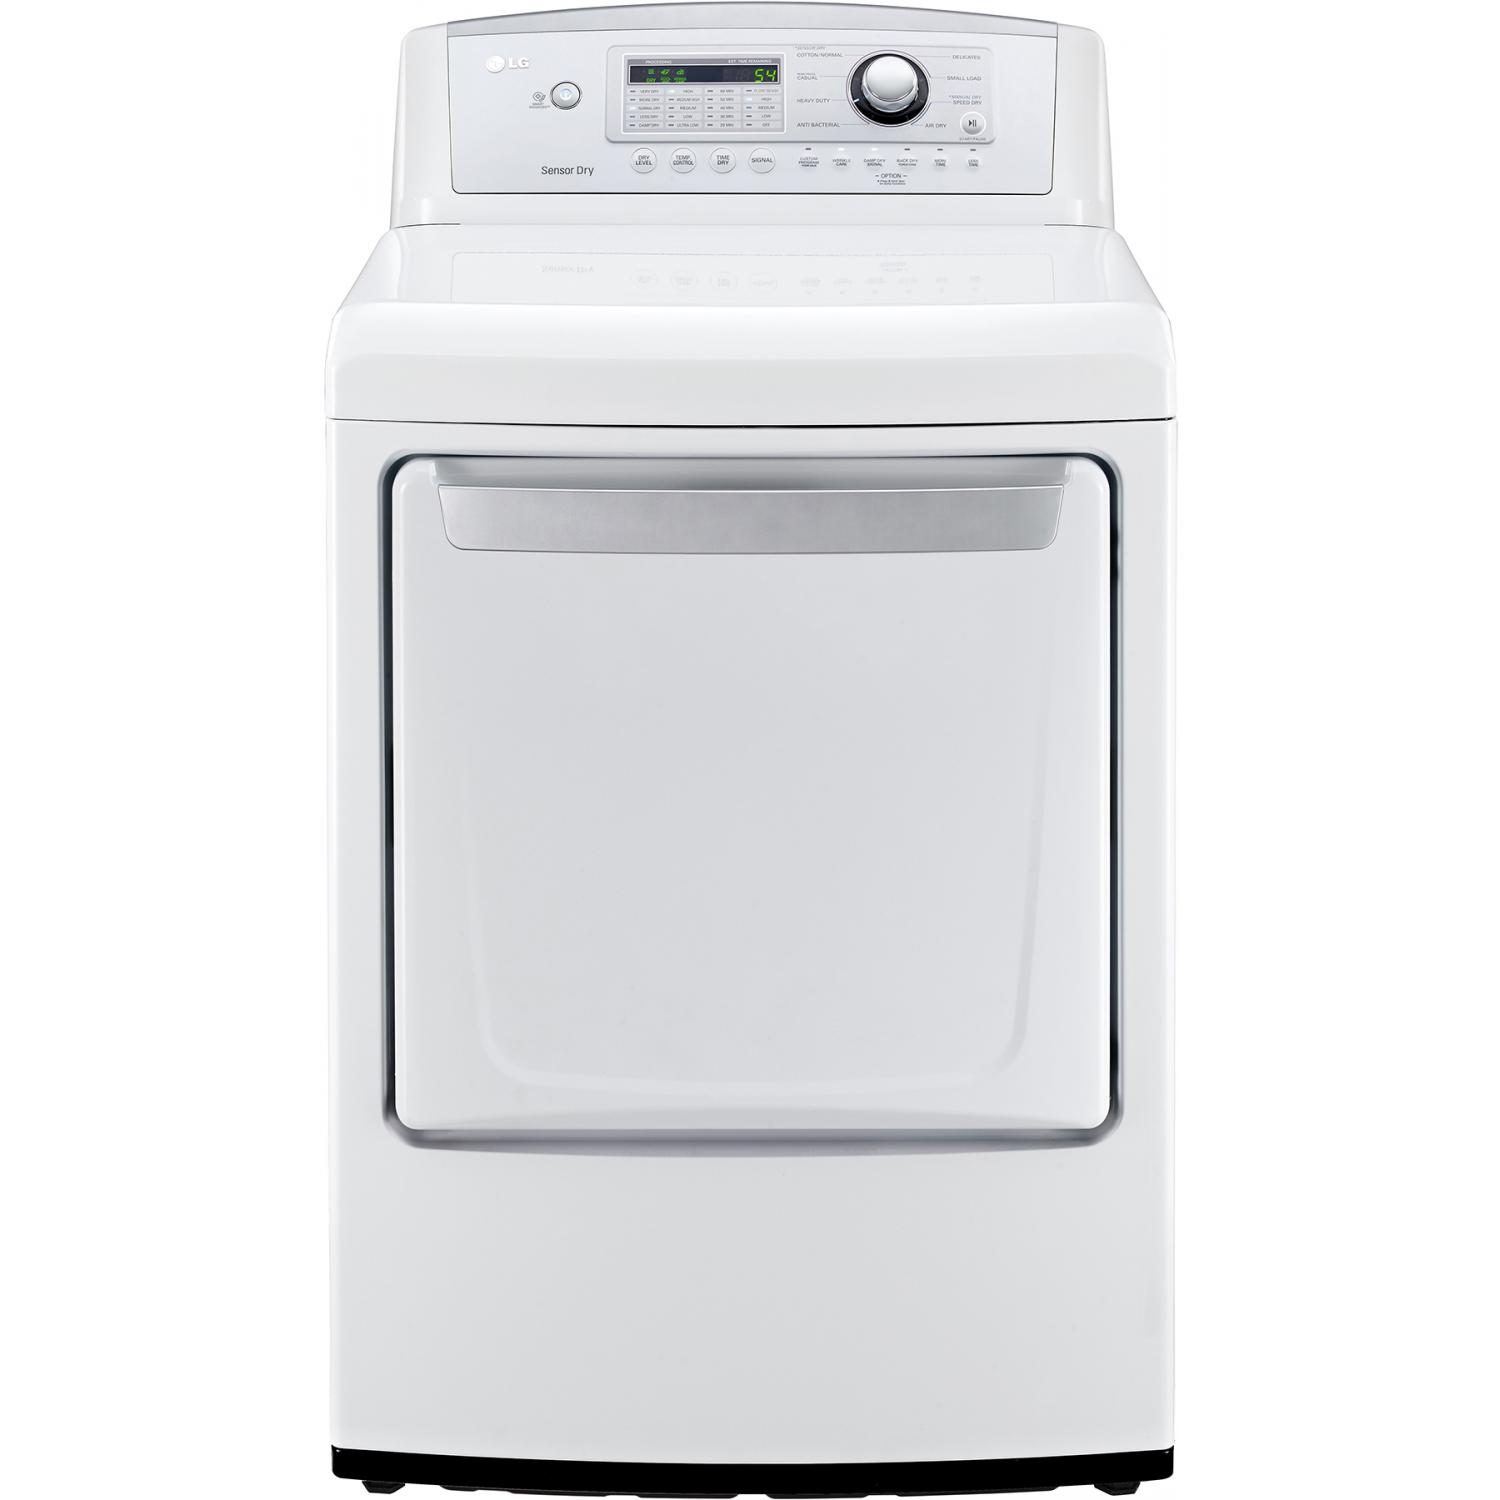 LG DLG4971W 7.3 Cu. Ft. High Efficiency Front Load Gas Dryer - White 2890280